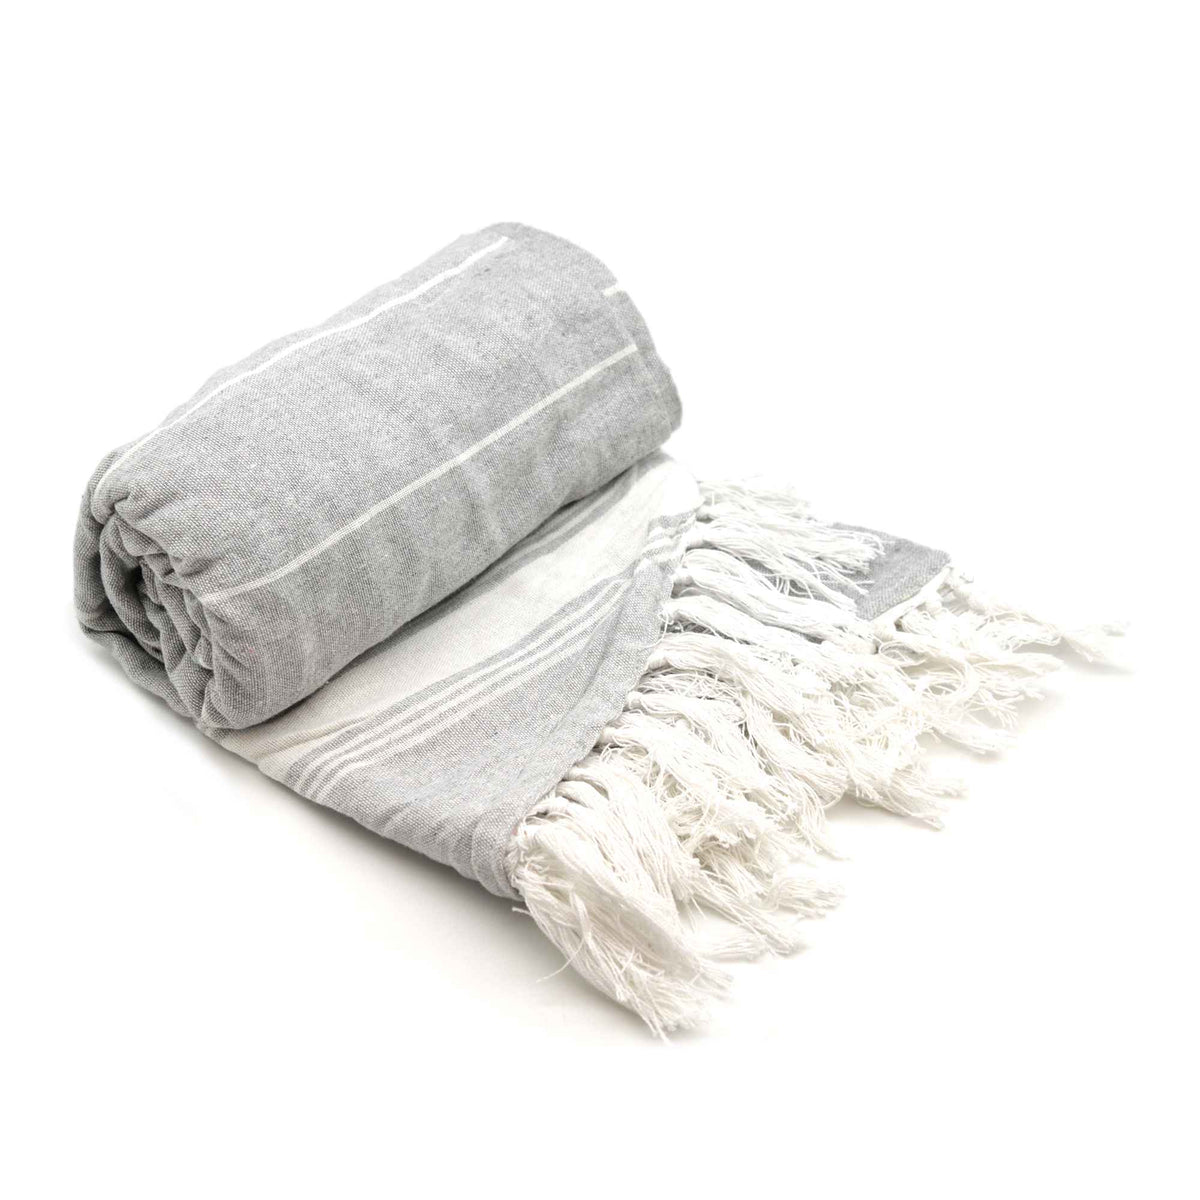 Nicola Spring Round Turkish Beach Towel - Grey